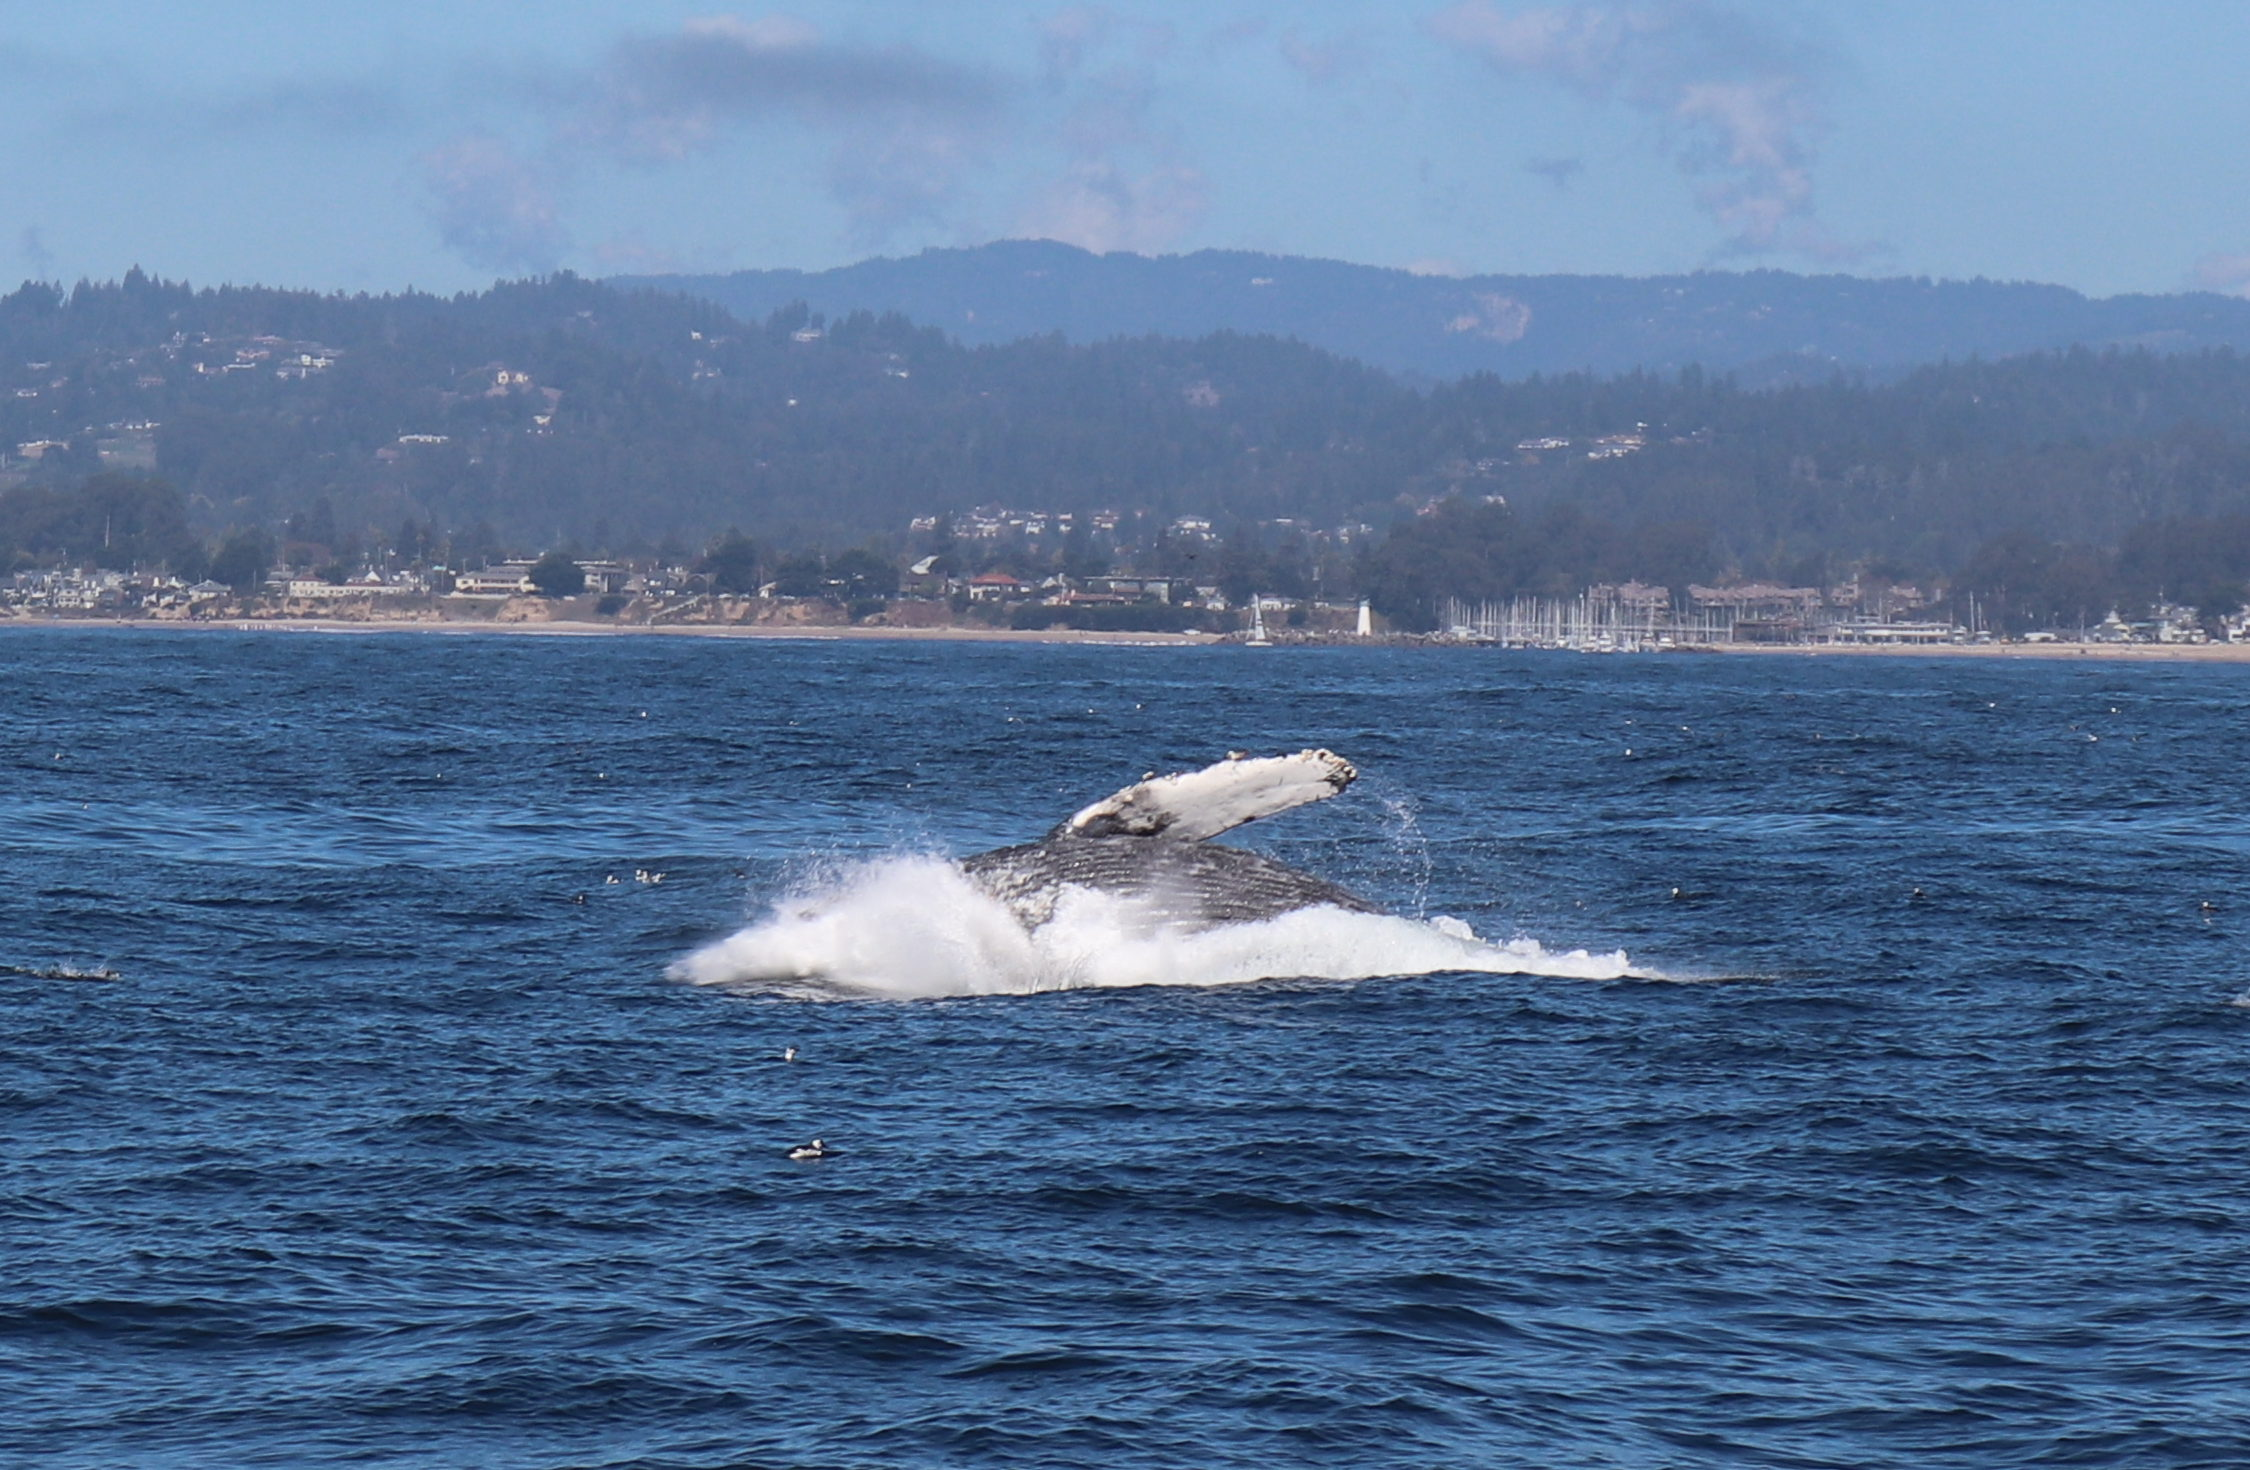 Whale Watching and Wine Tasting on California's Central Coast